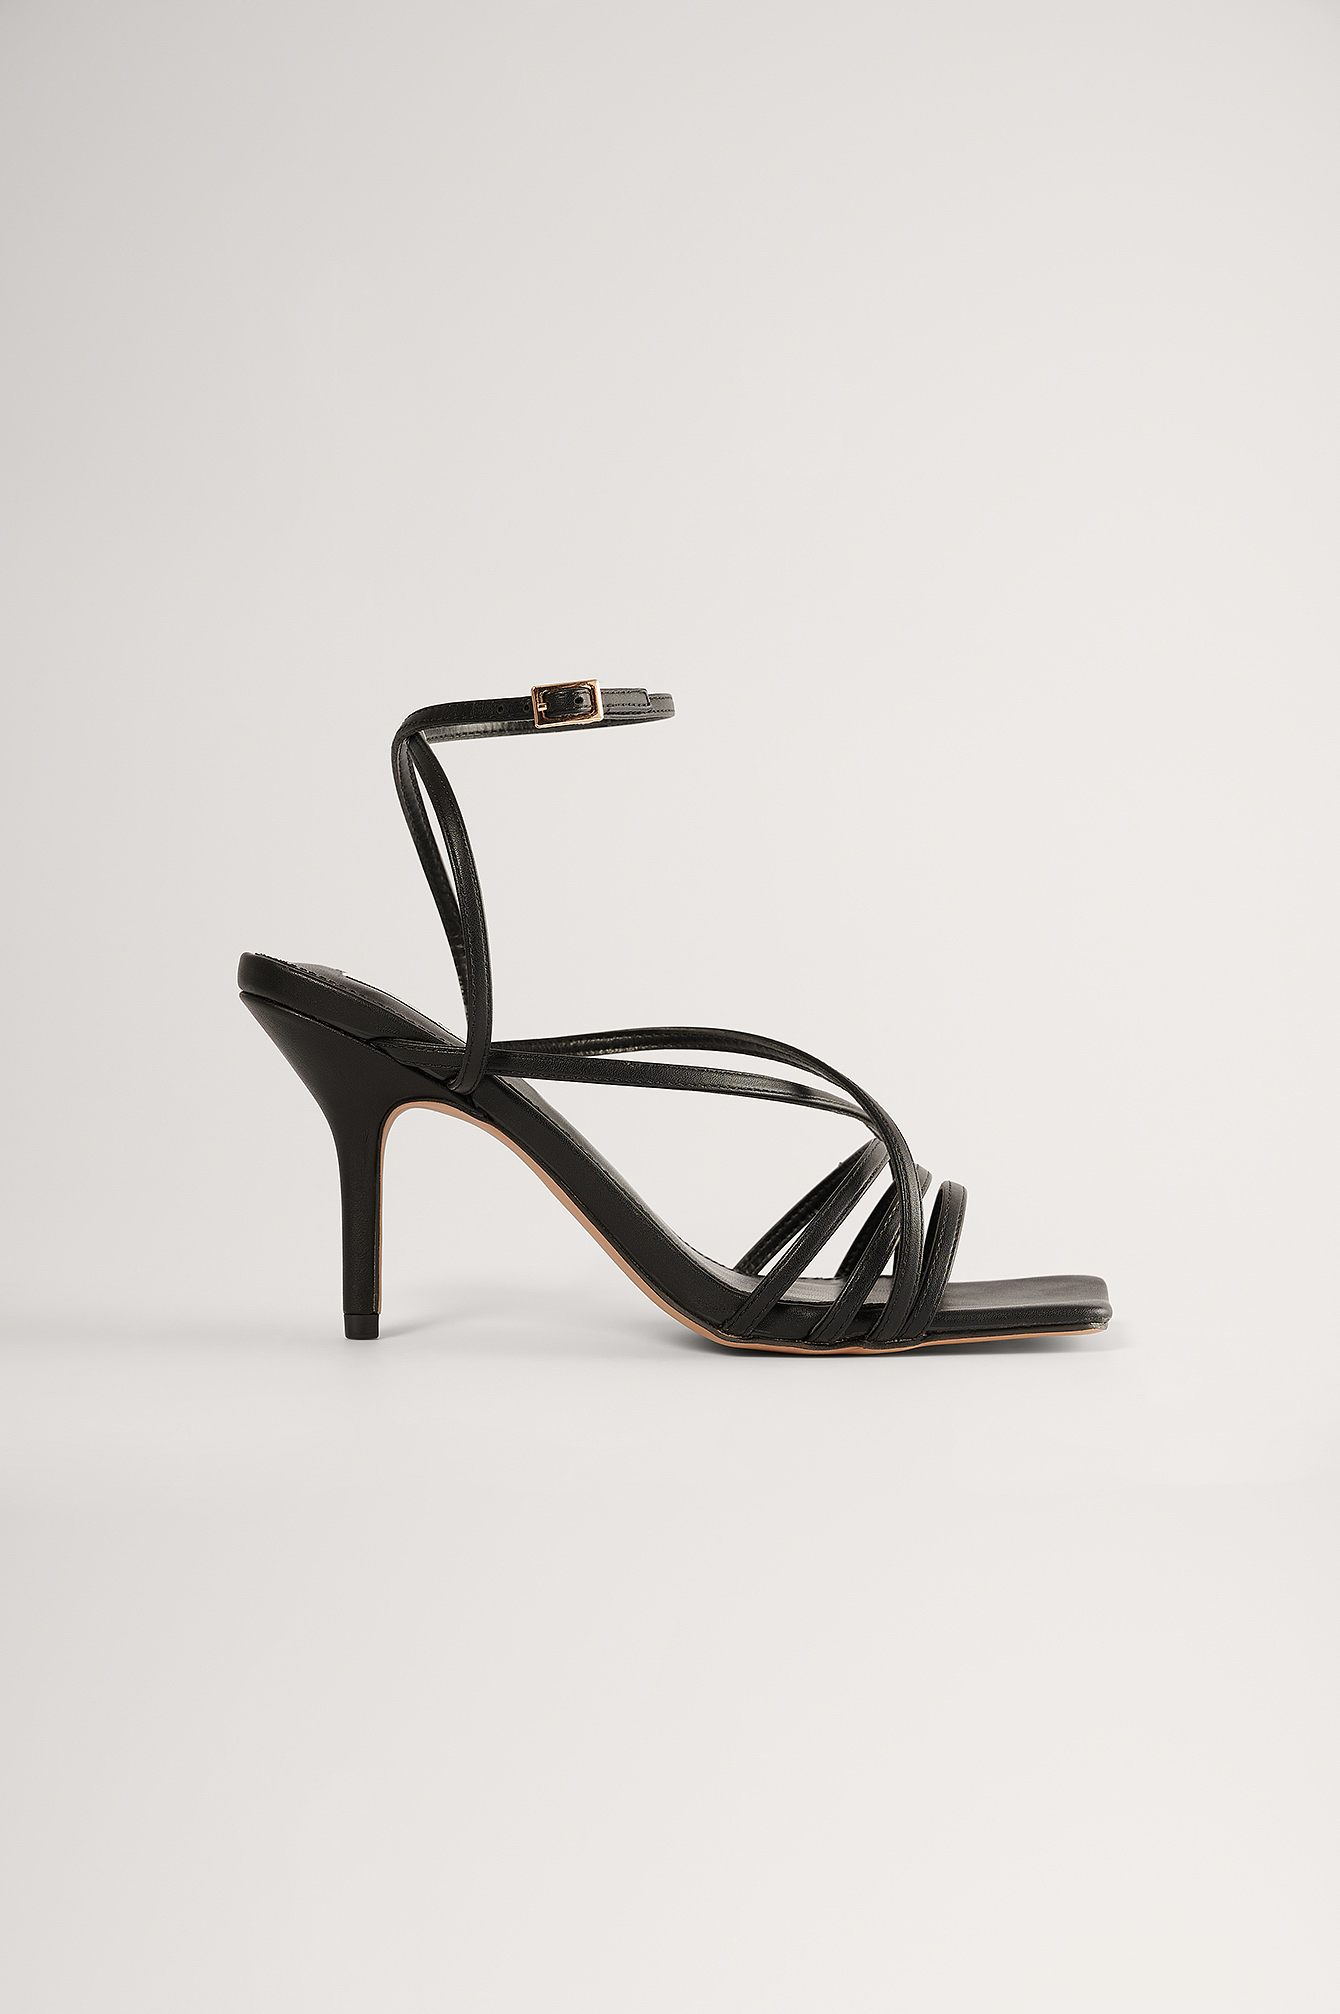 Black Strappy High Heel Sandals